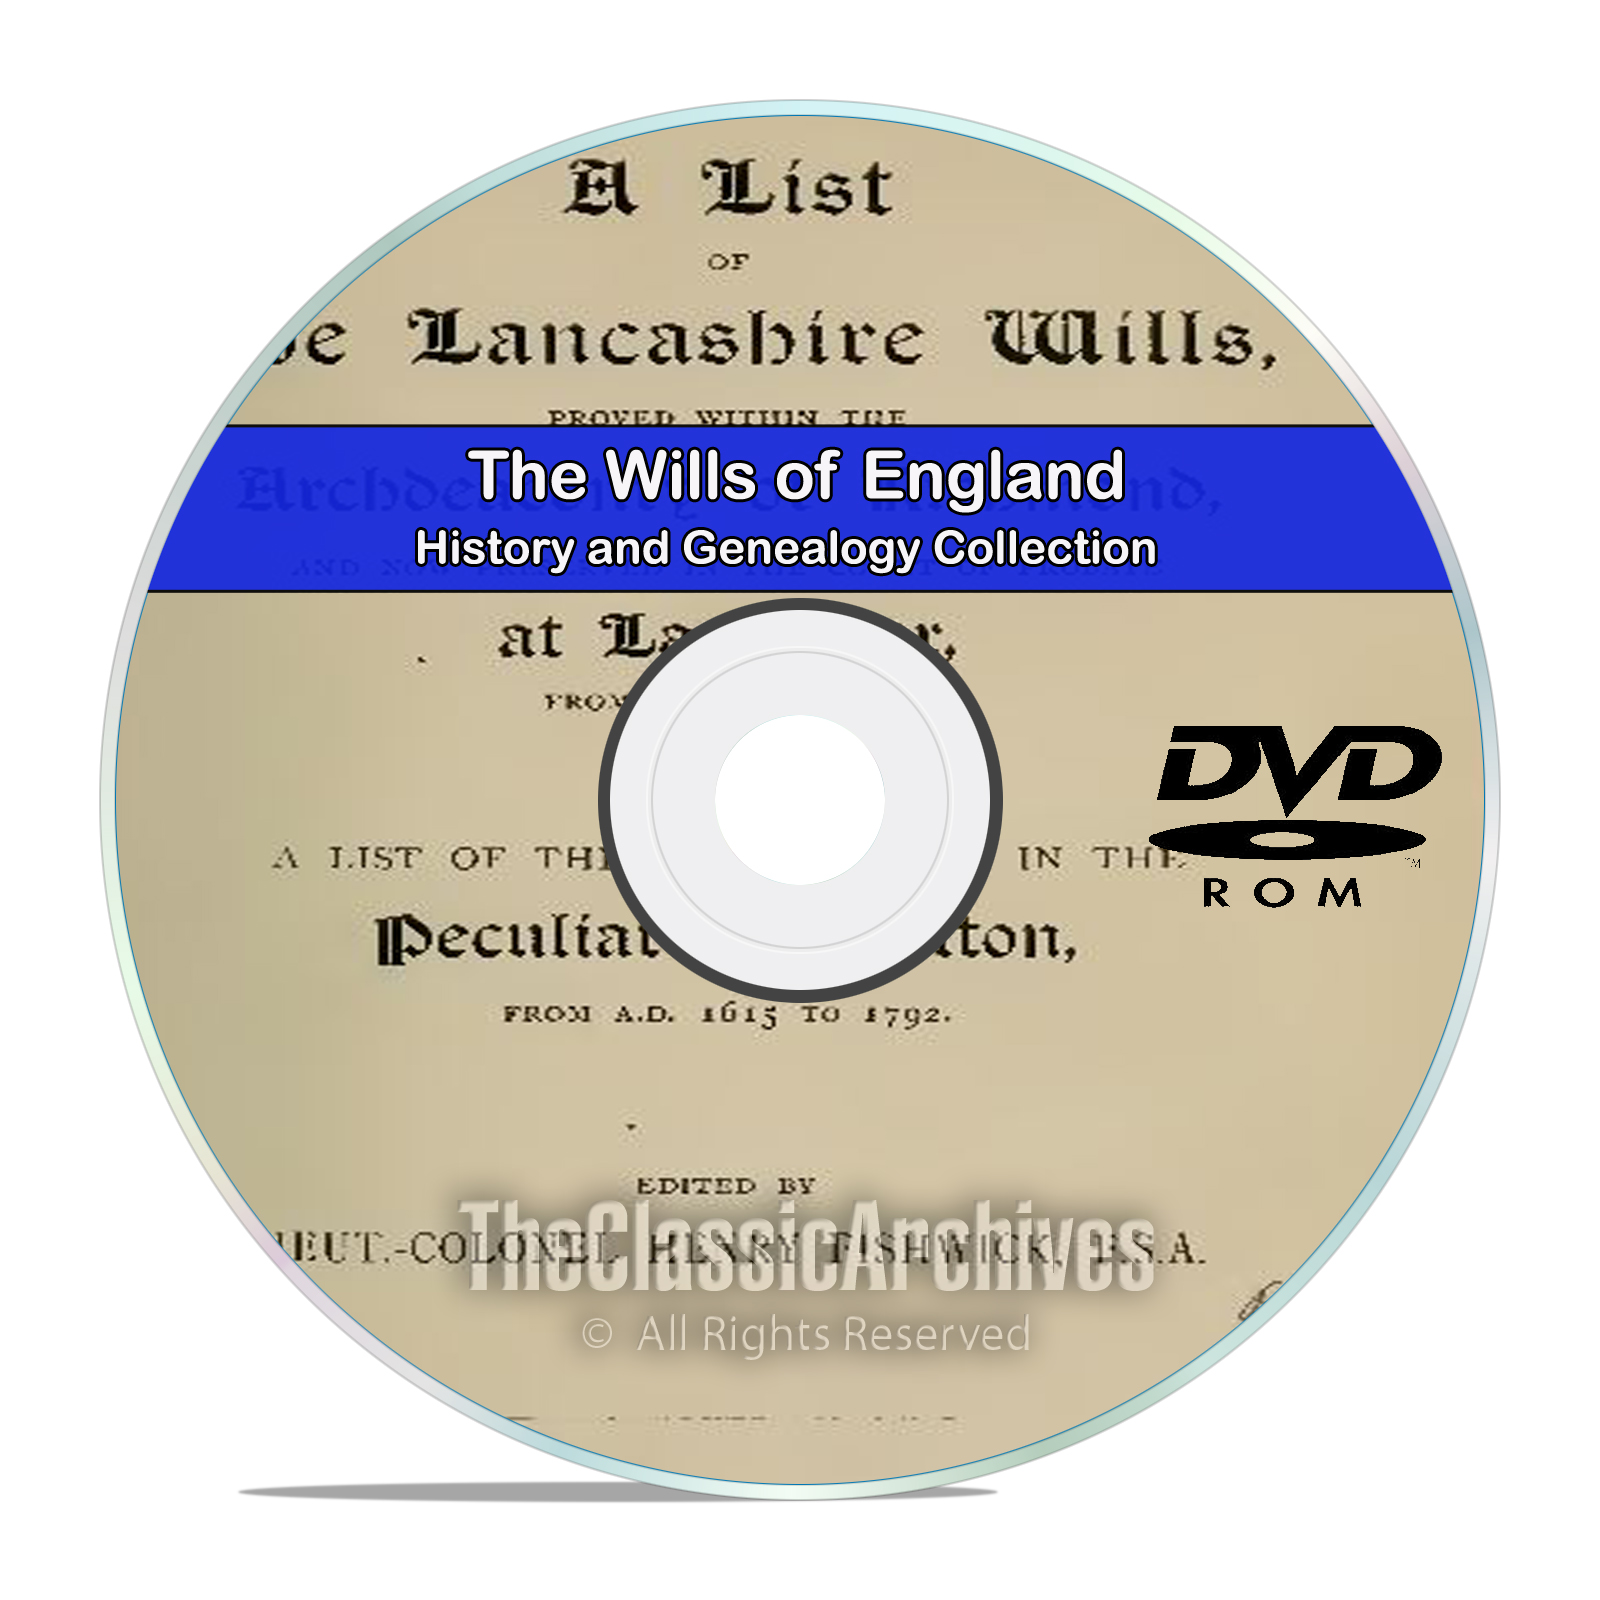 The Wills of England, English History and Genealogy, 100 Titles on DVD